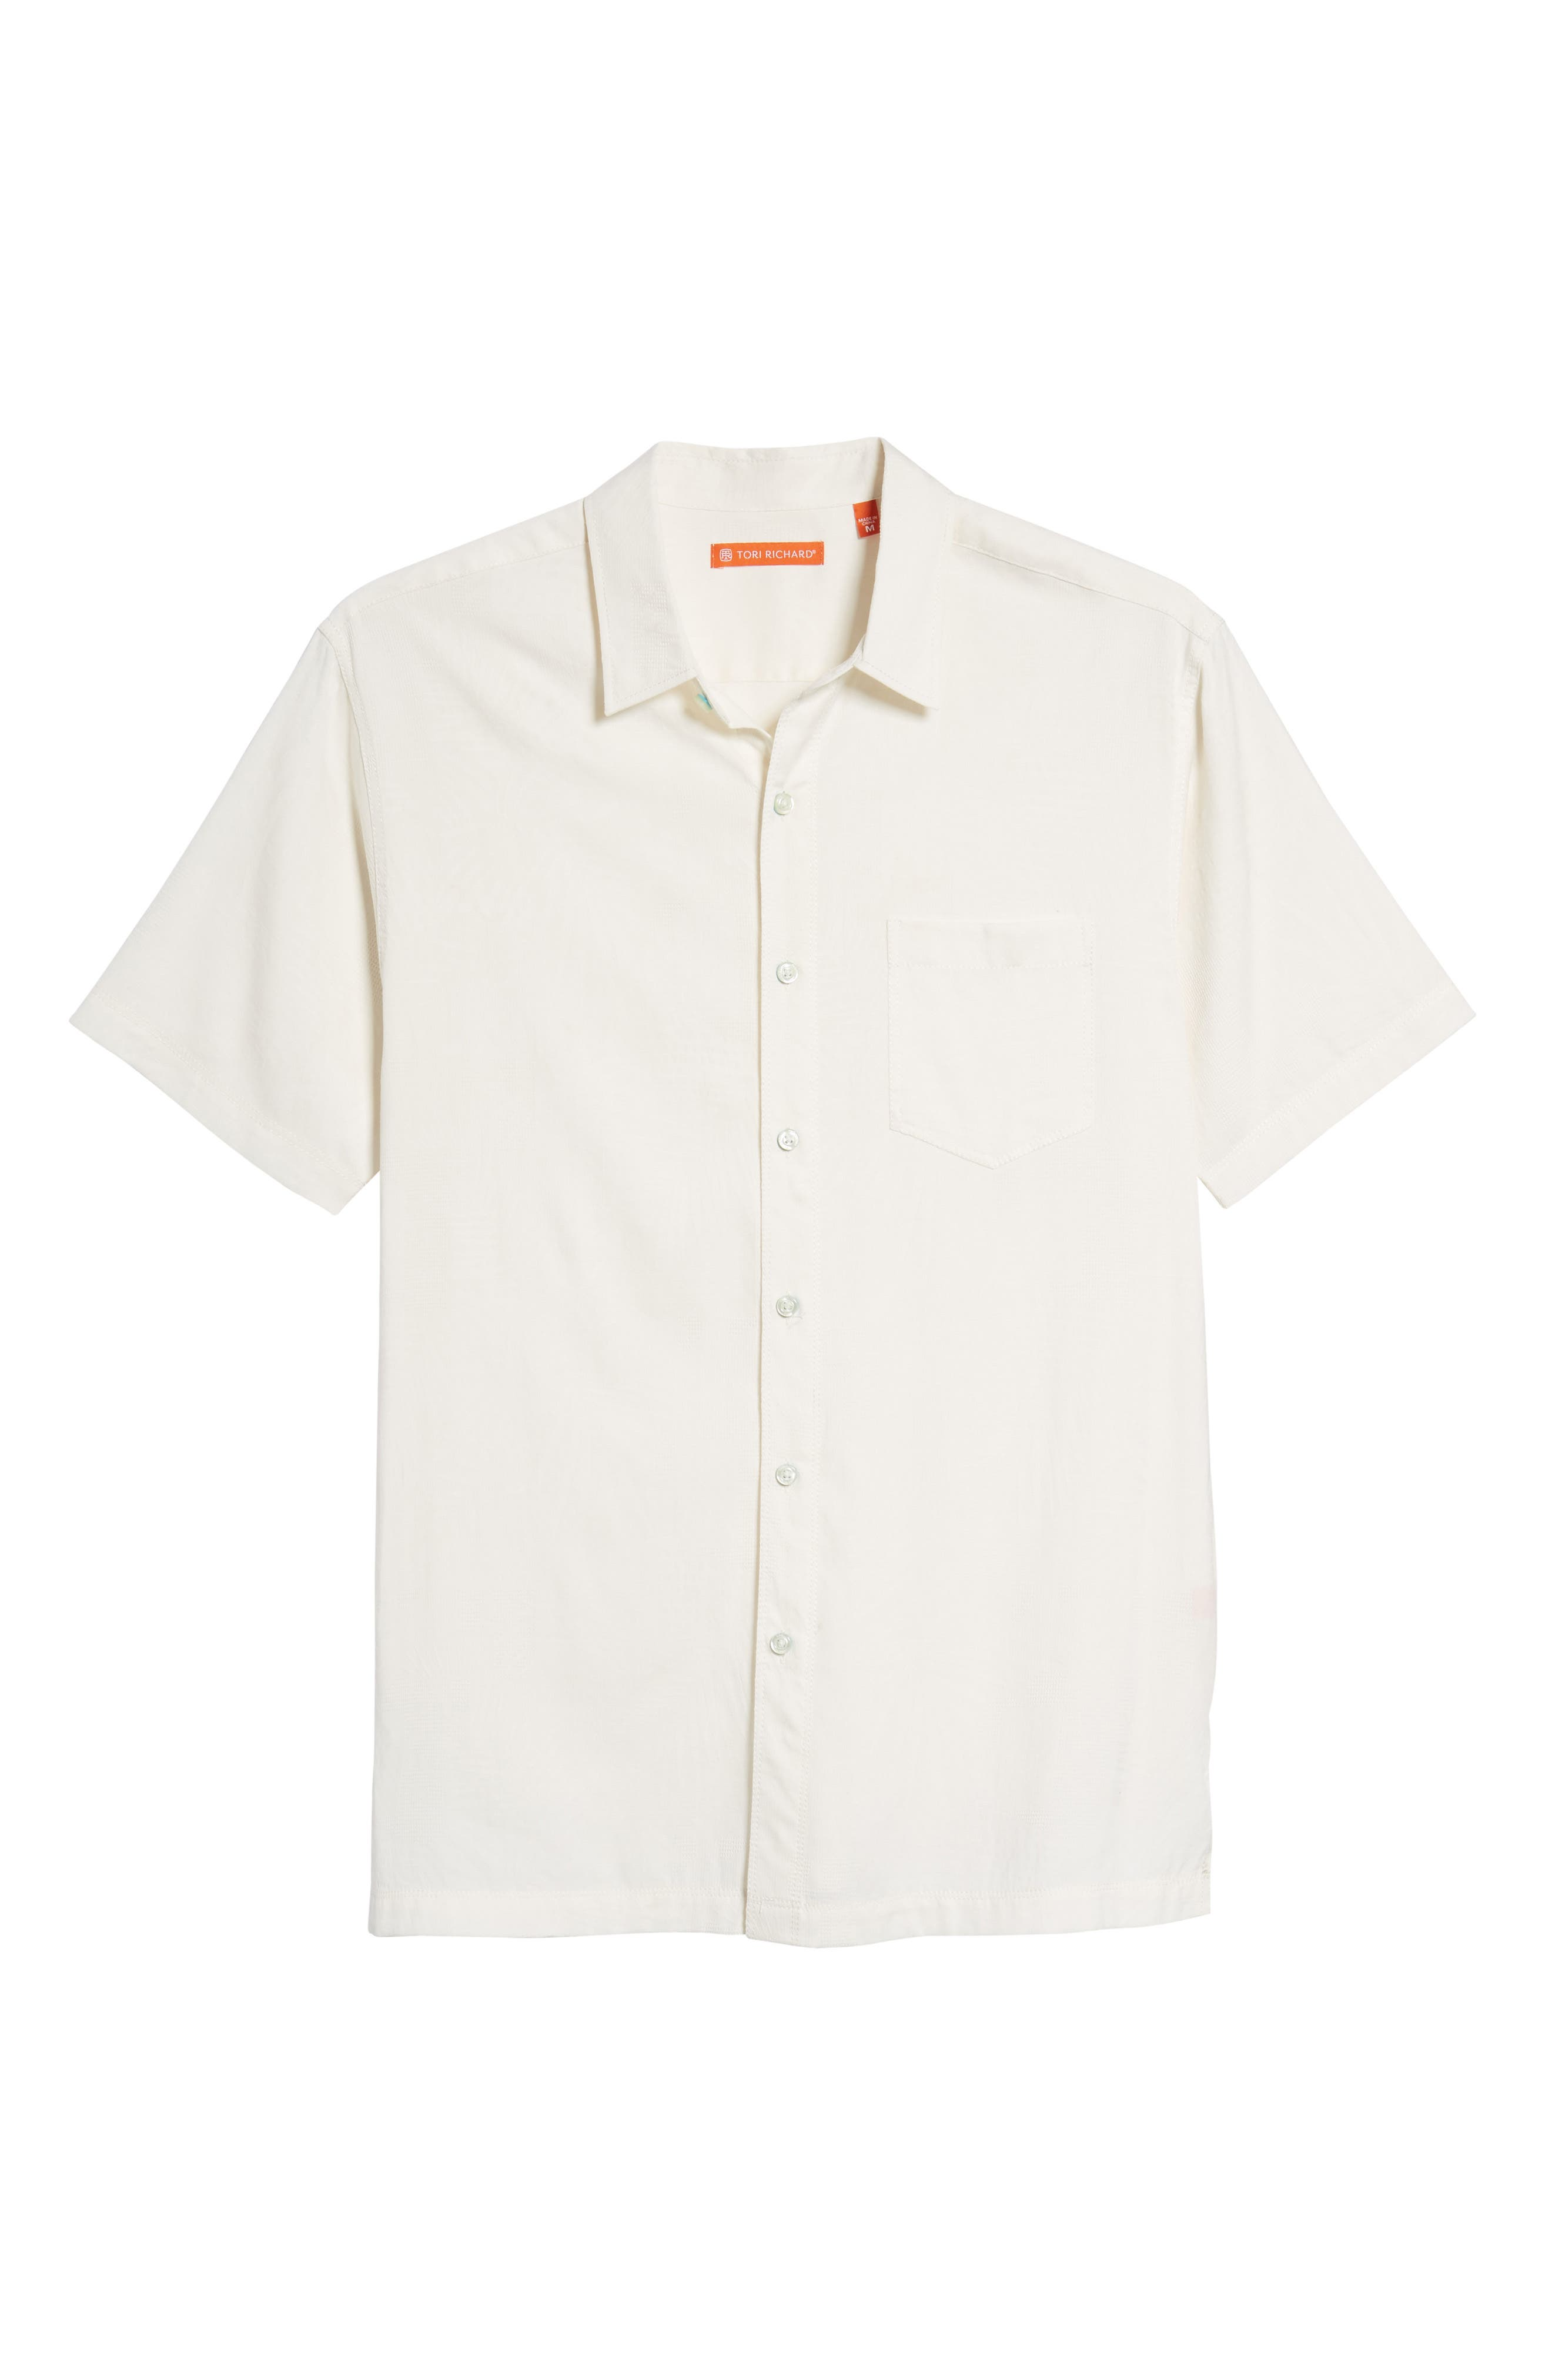 Milagro Classic Fit Sport Shirt,                             Alternate thumbnail 6, color,                             Eggshell